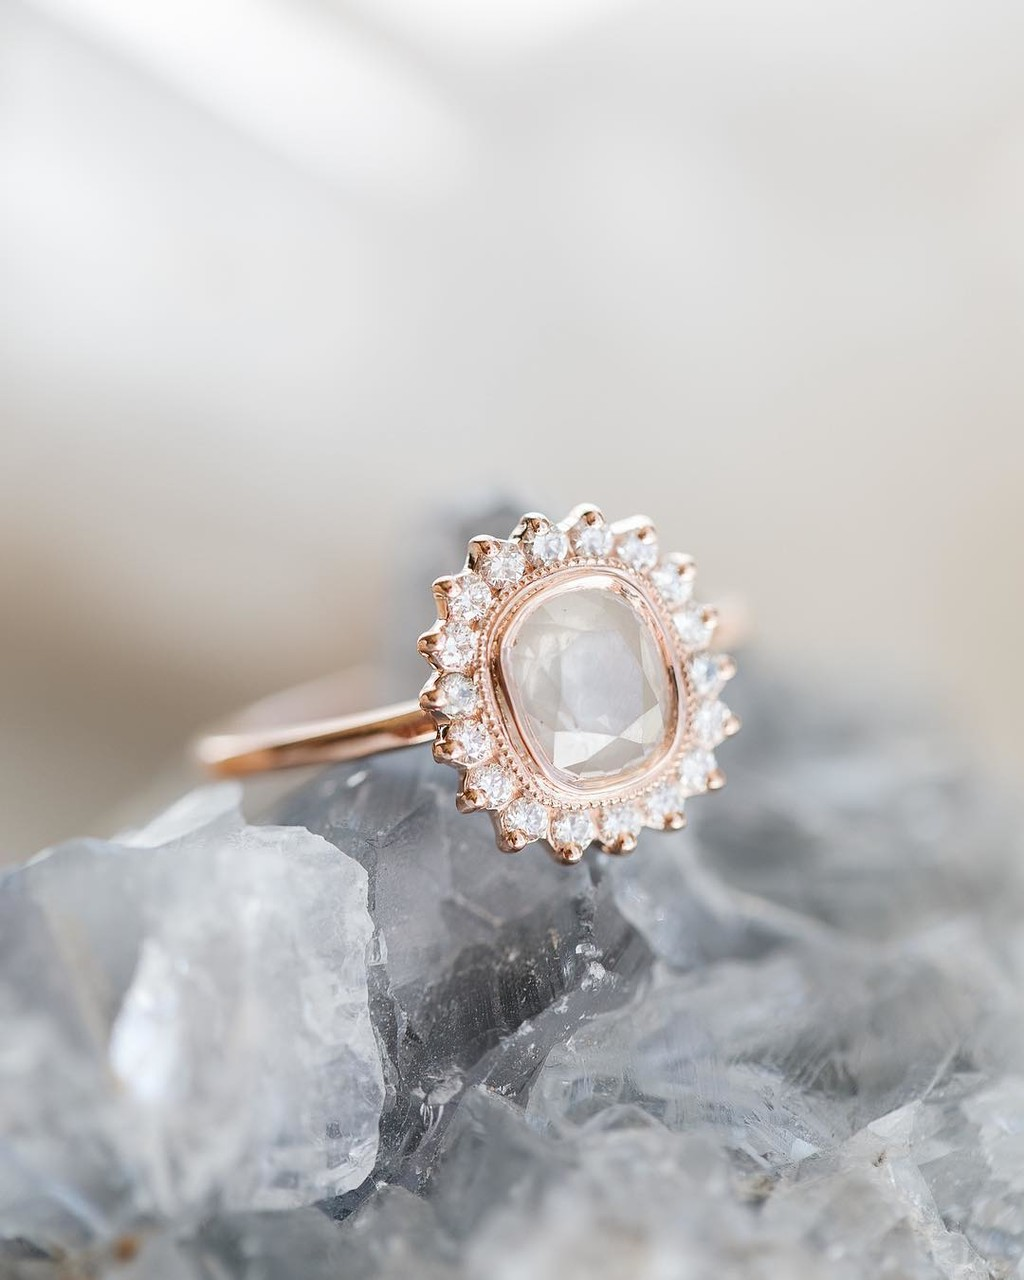 Can't get enough of this rough diamond starburst halo ring available in store now!